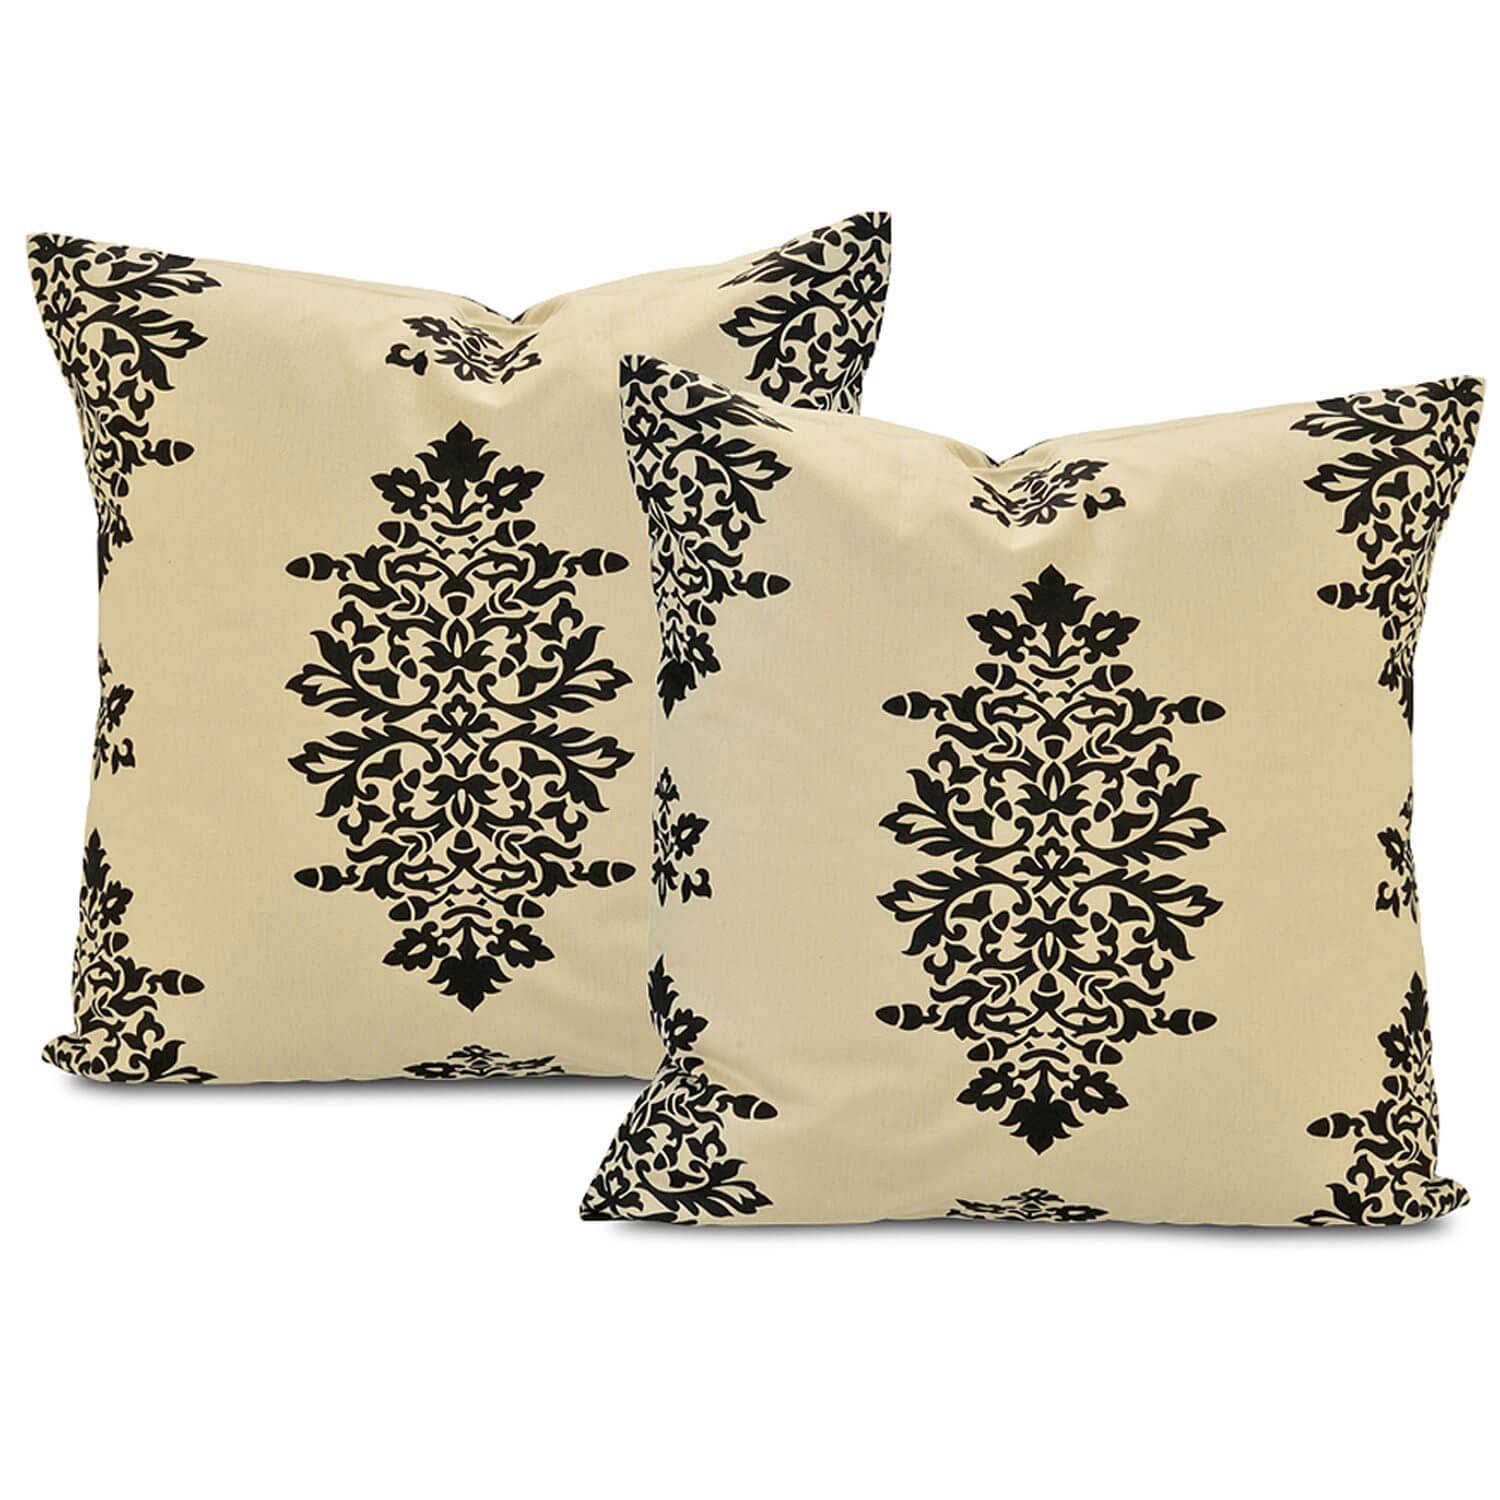 Jakarta Khaki Printed Cotton Cushion Cover (Pair)